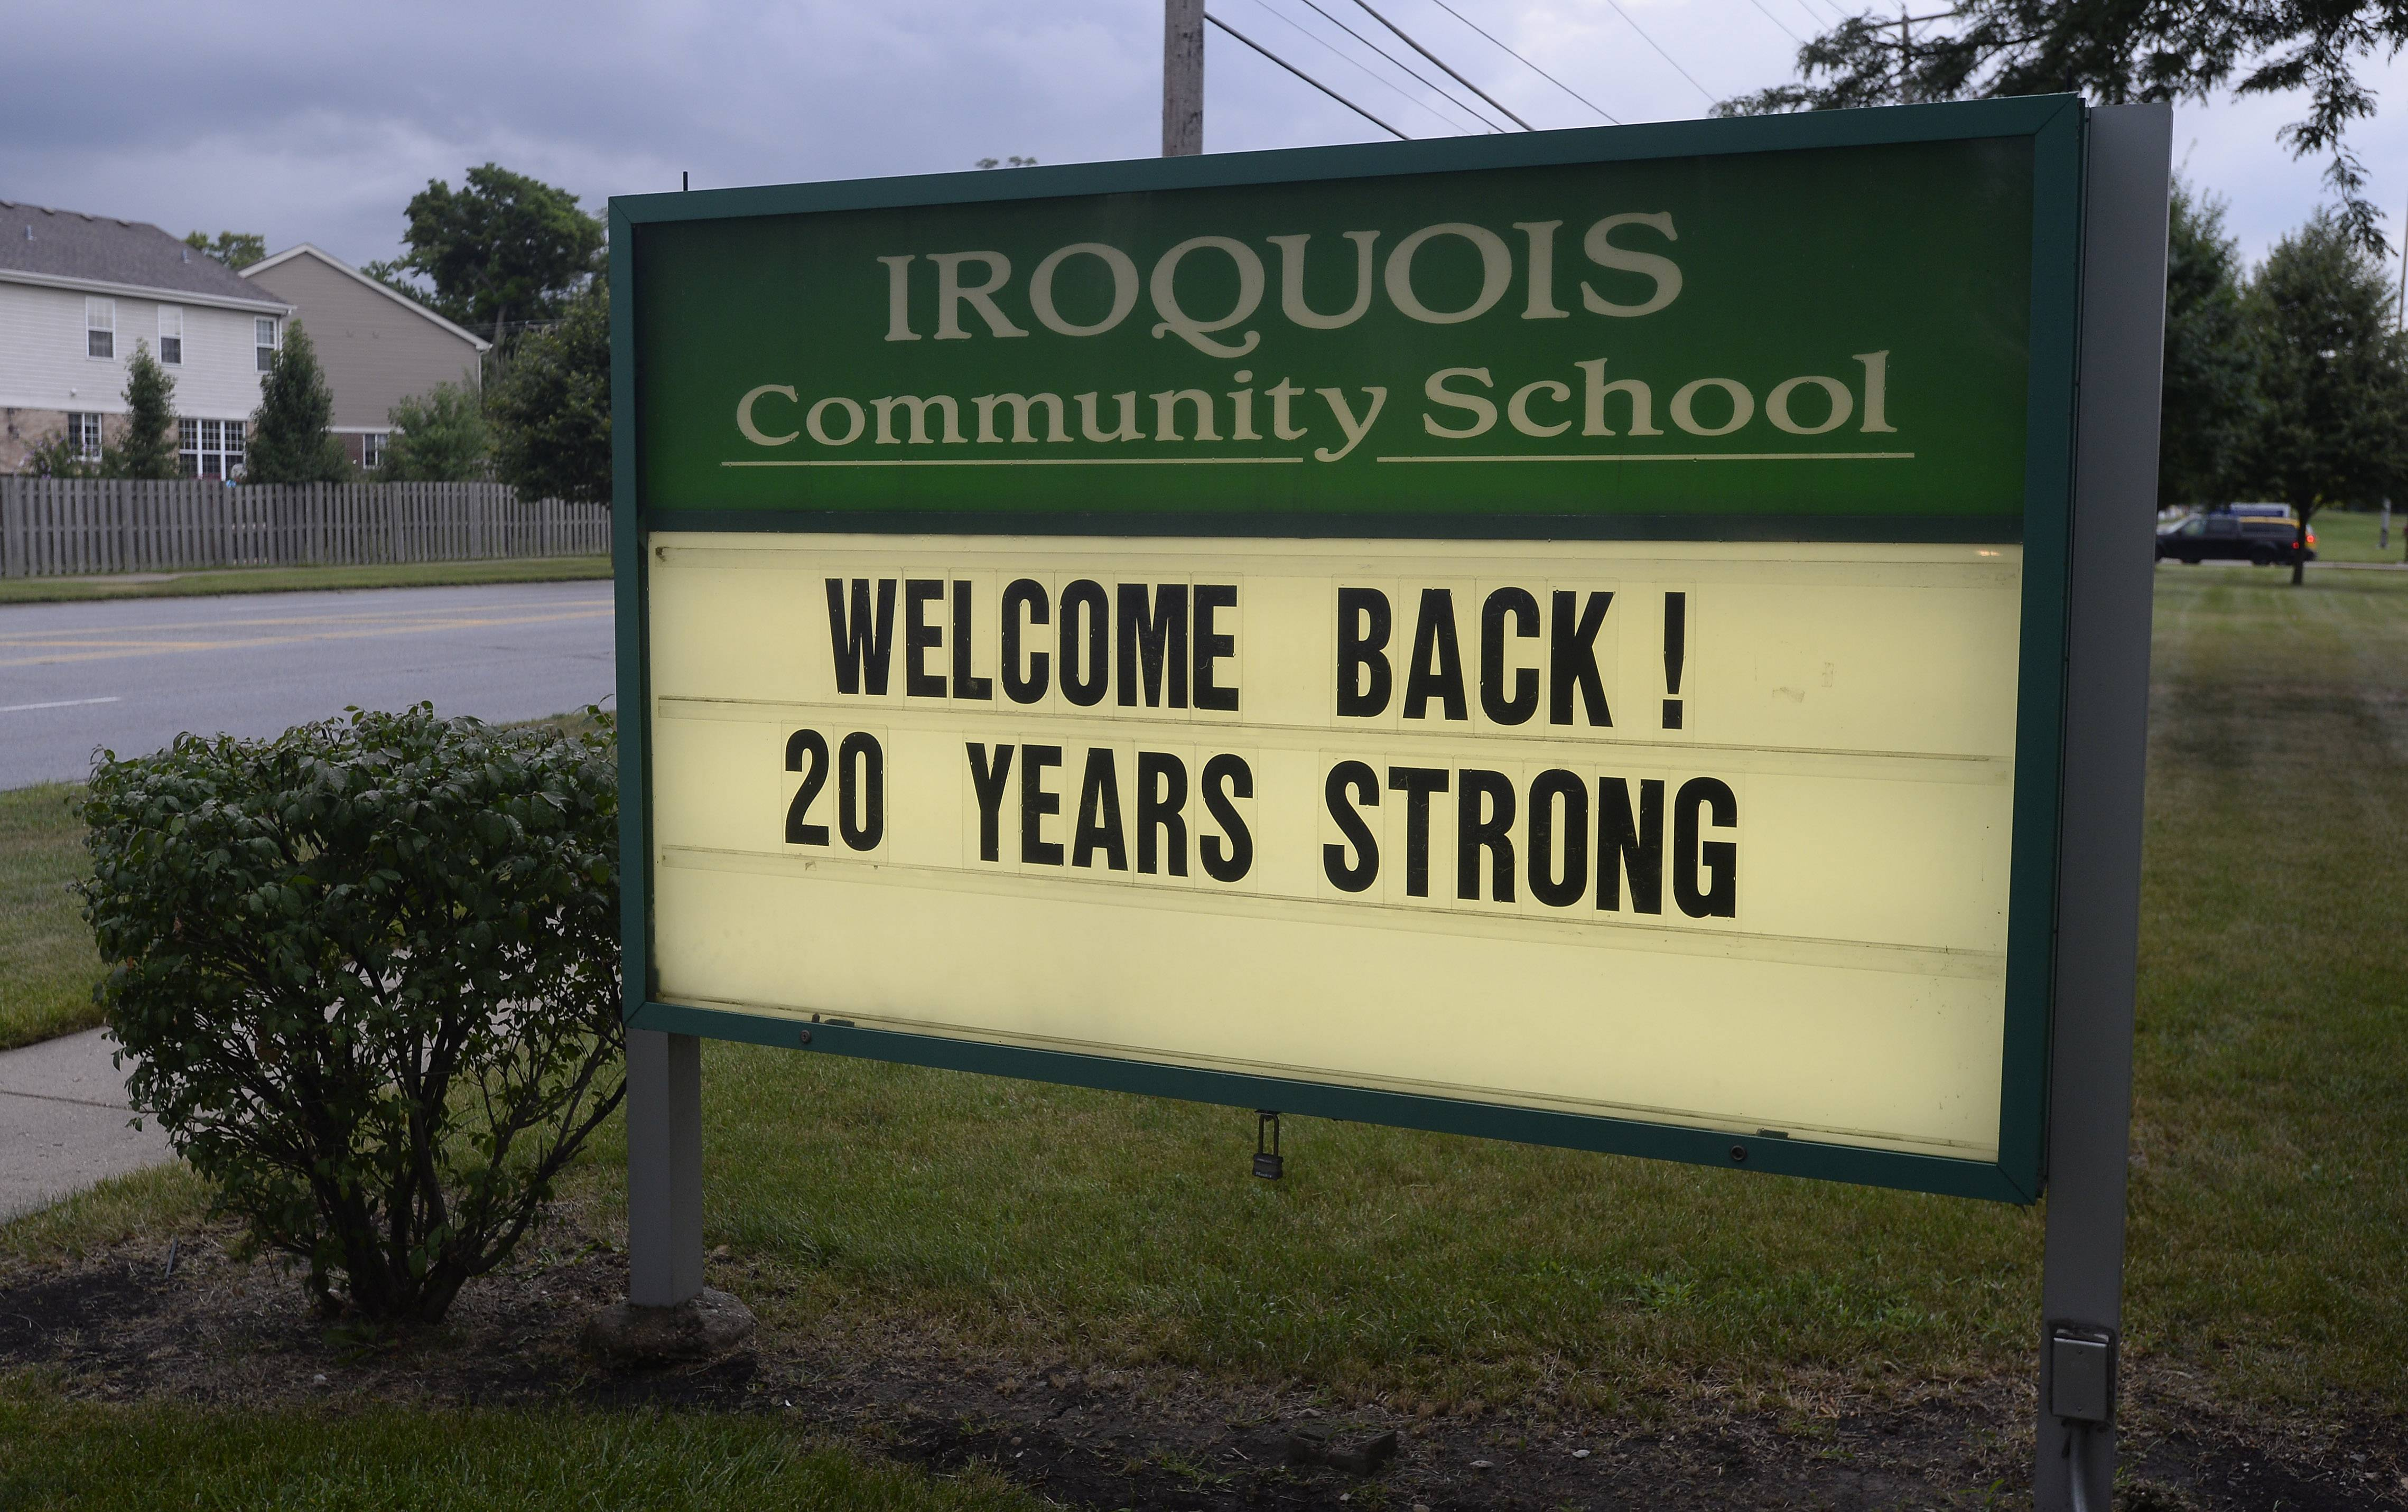 Iroquois School in Des Plaines celebrated its 20th anniversary on Friday.